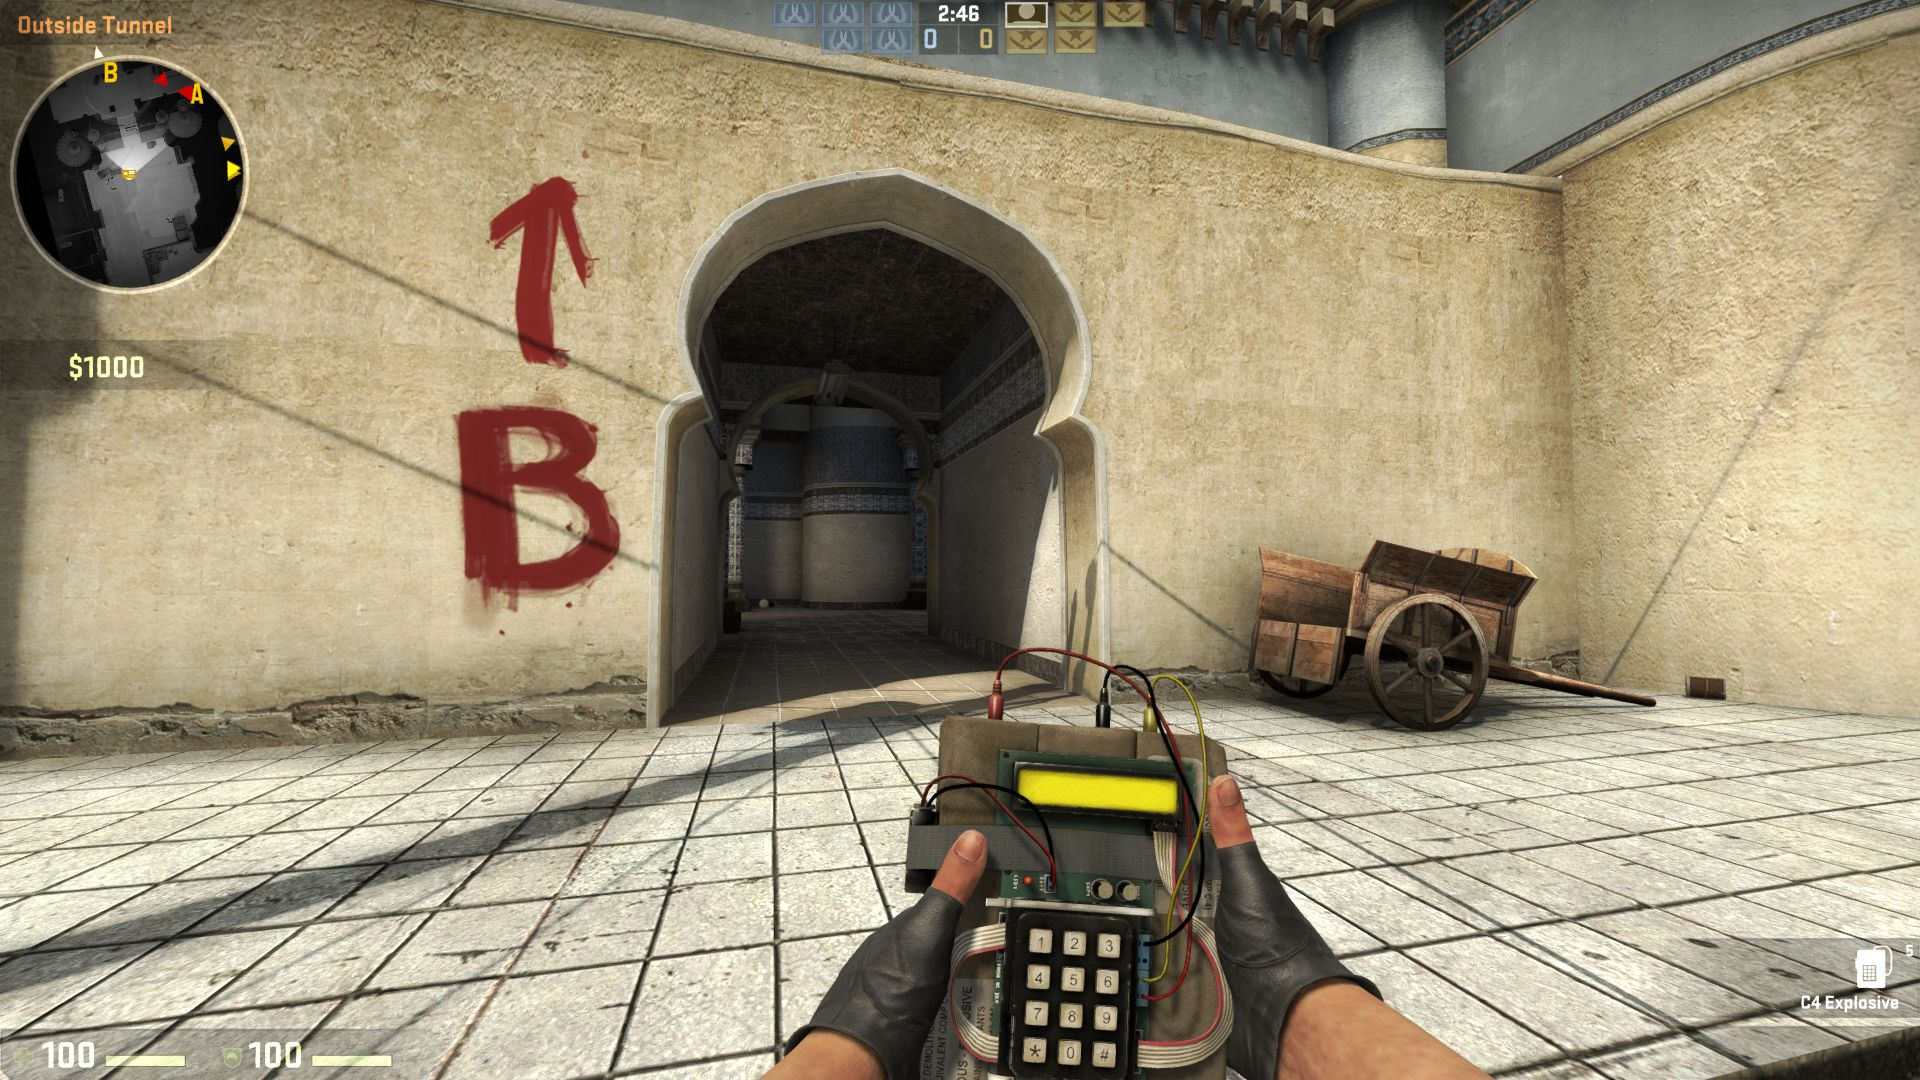 Shadow Wallpaper Hd Counter Strike Global Offensive Benchmarked